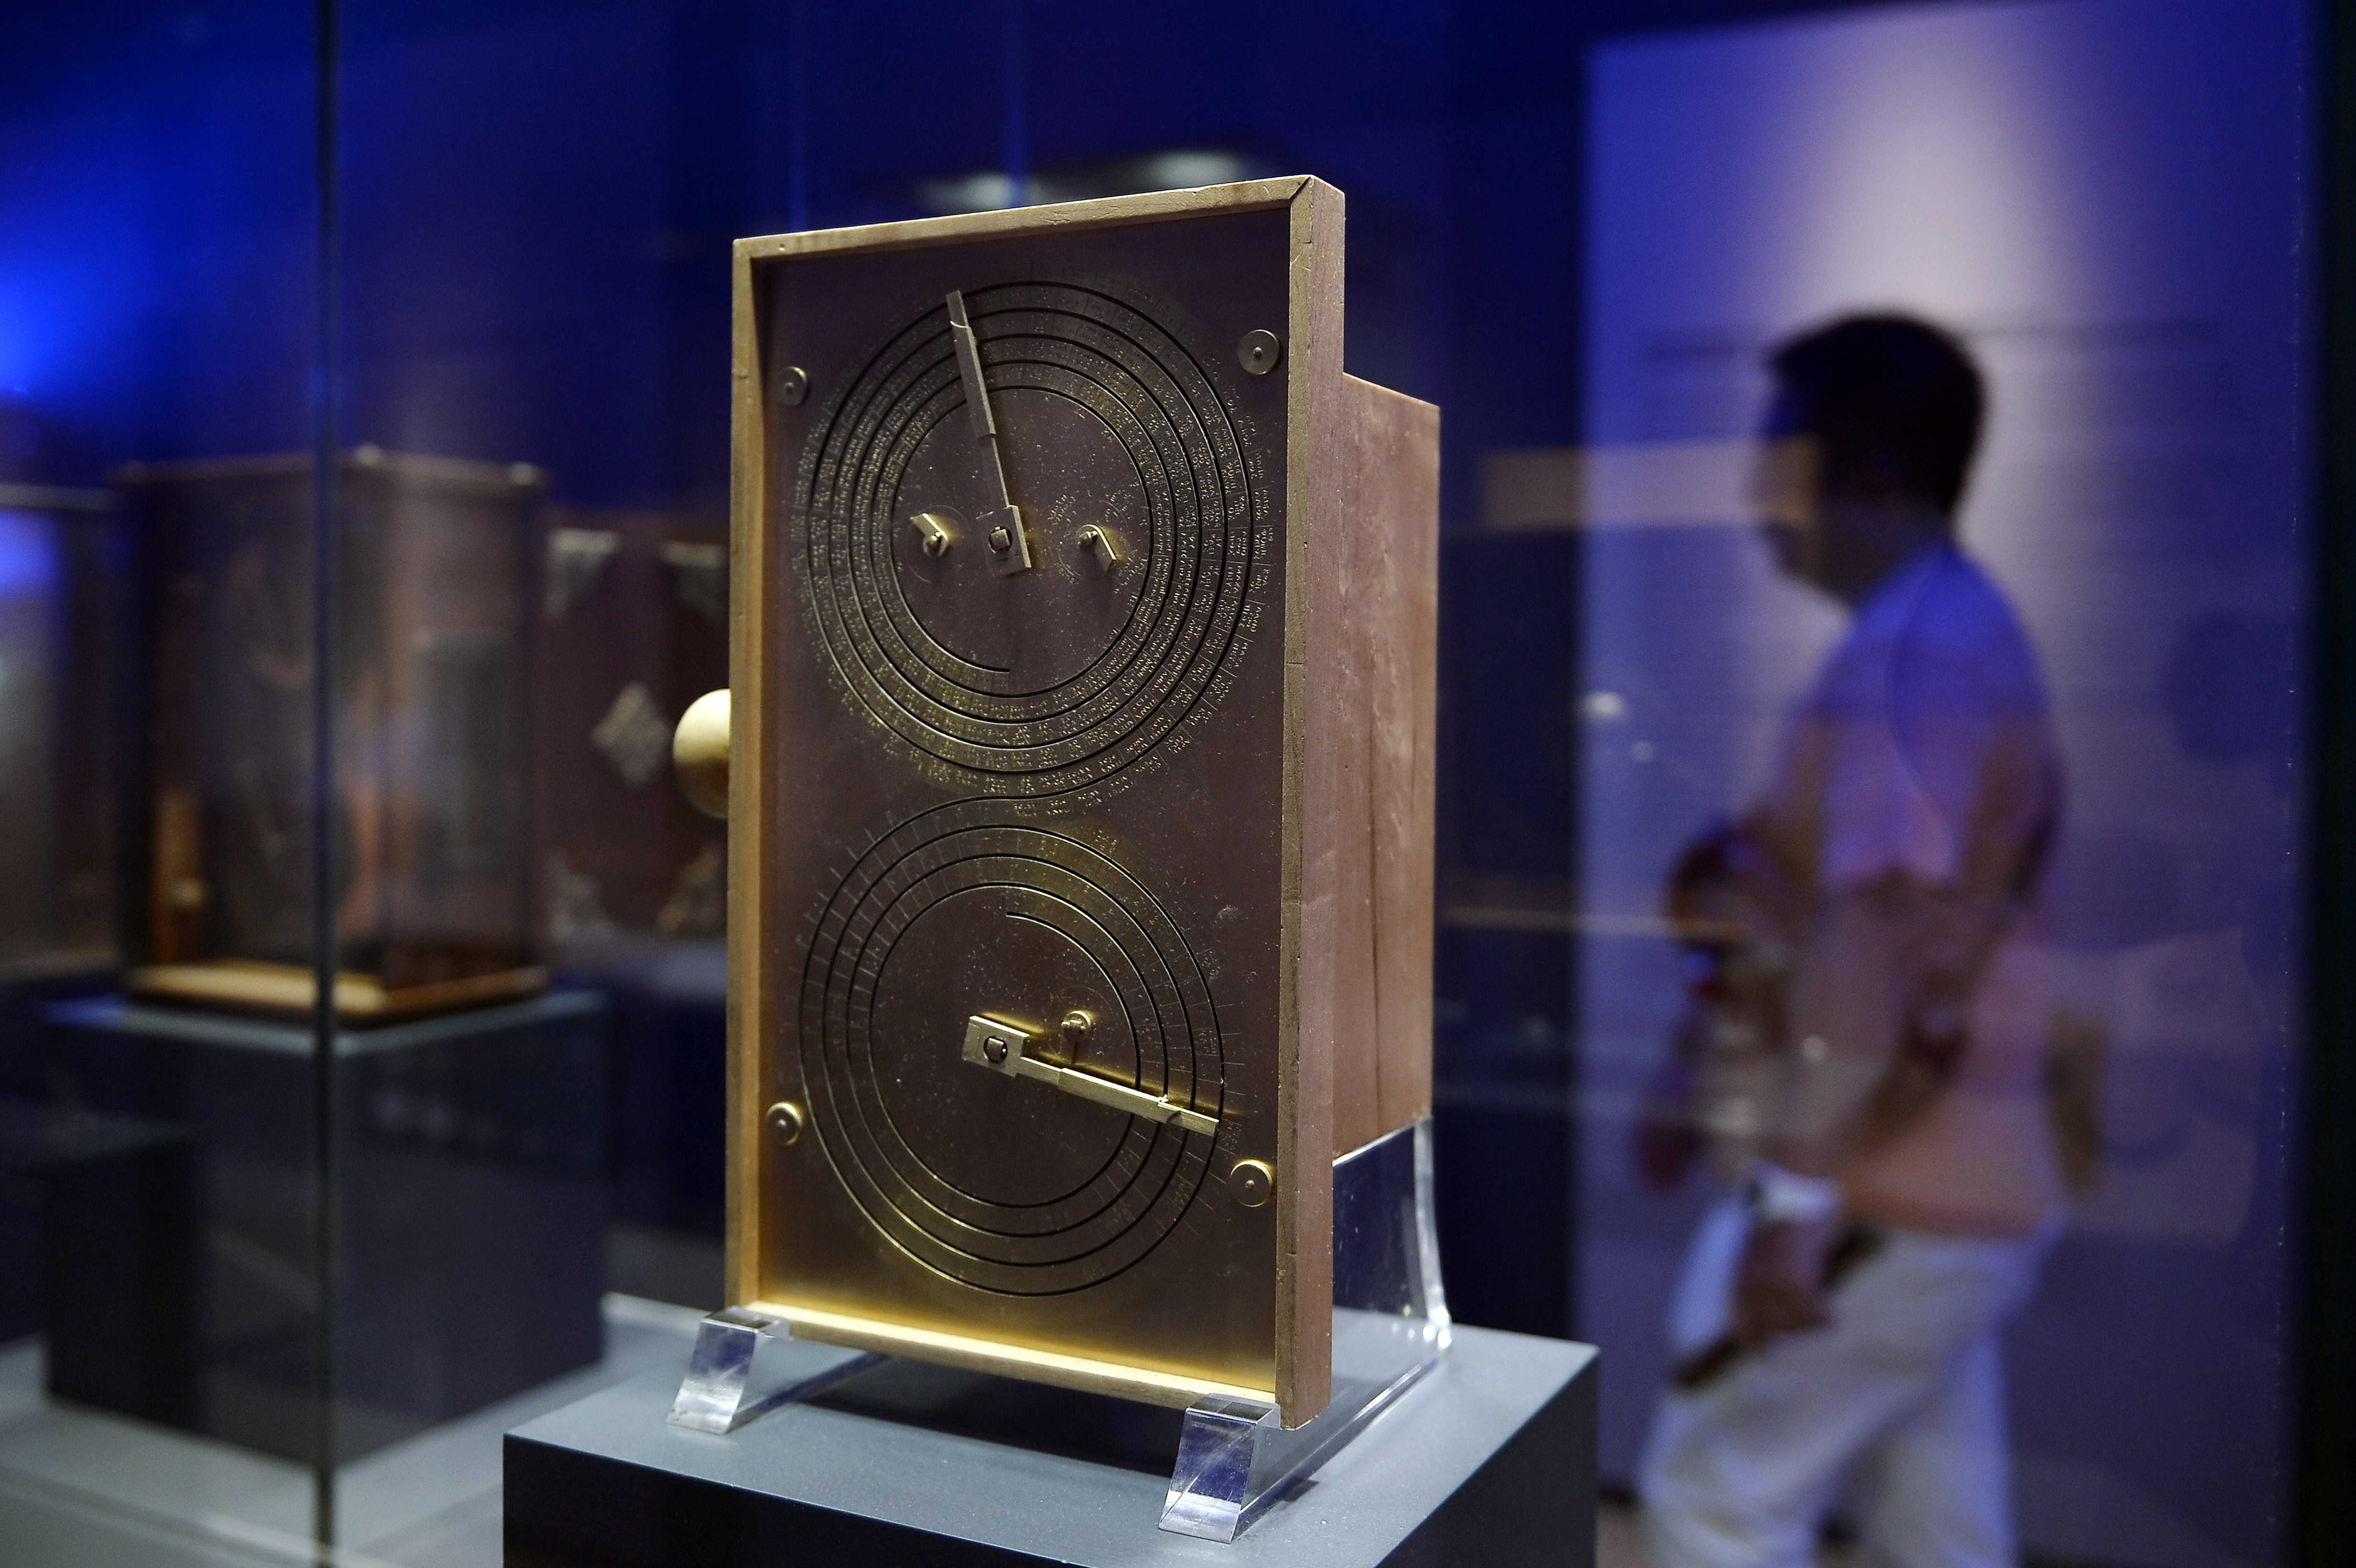 Ancient Greeks May Have Used World's First Computer to Predict the Future